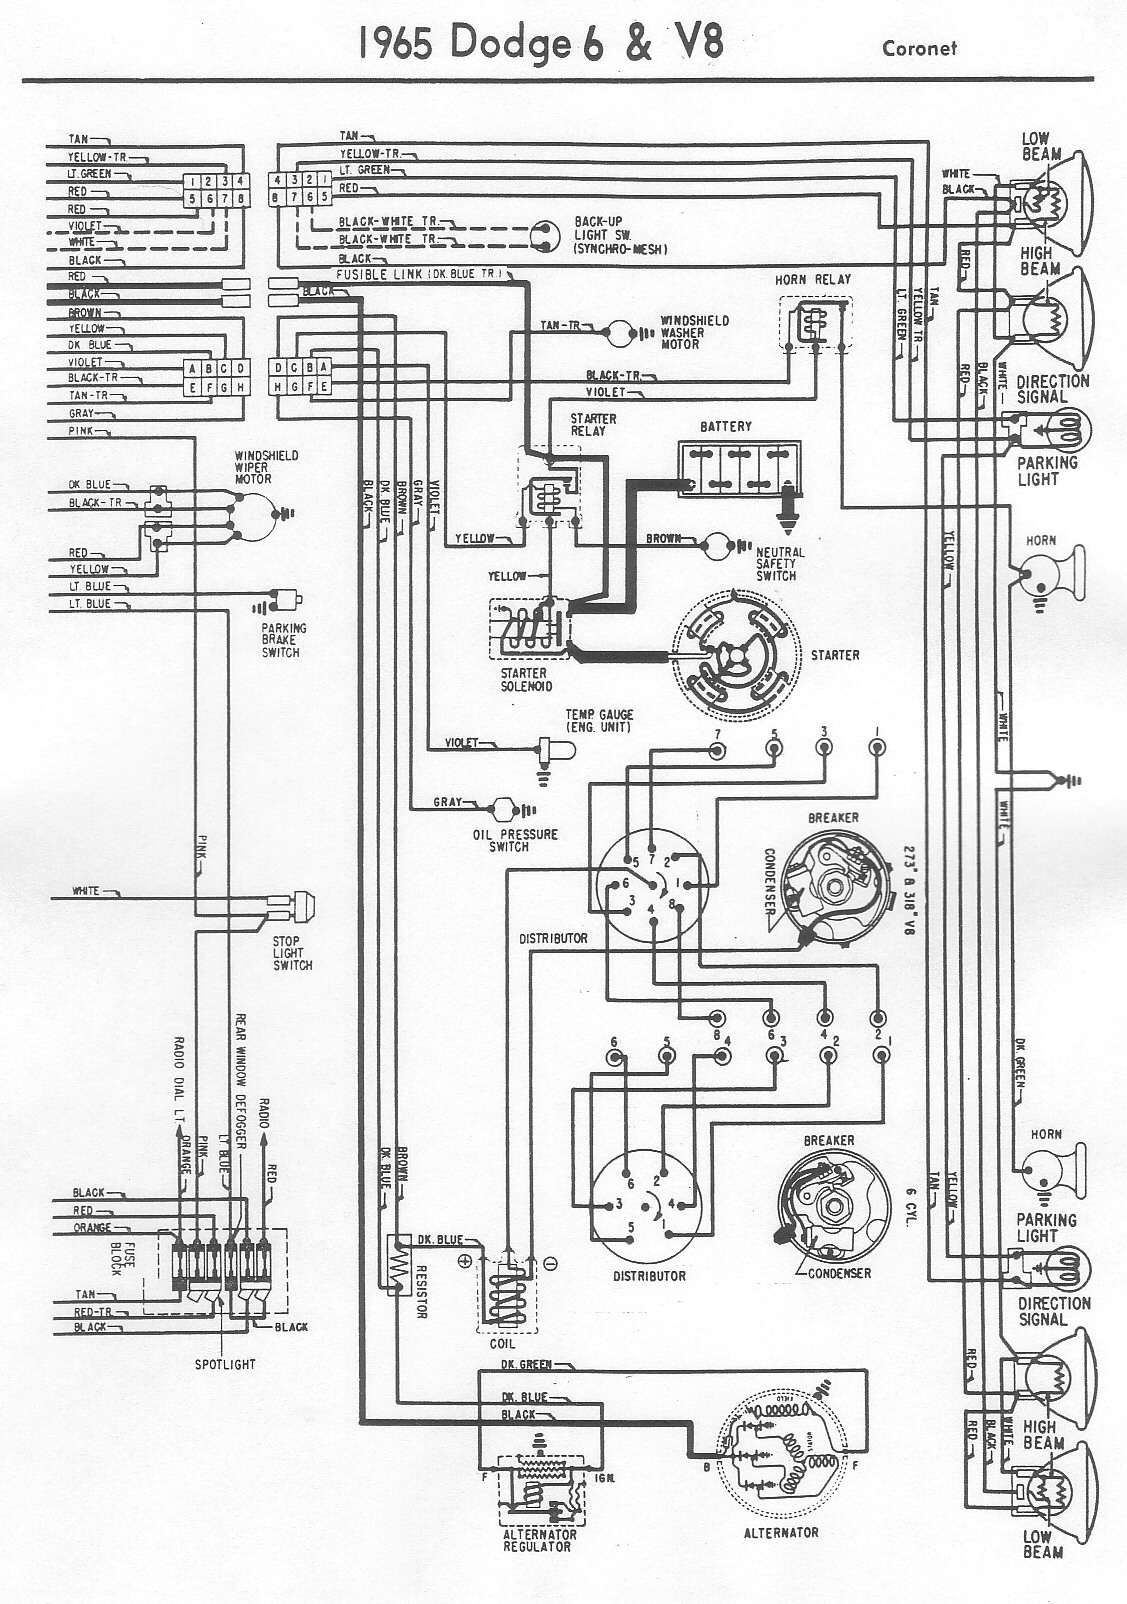 auto diagram 1970 plymouth wiring 1960 chevy truck wiring diagrams lol 1970 dodge d100 wiring diagram 1960 dodge d100 wiring diagram [ 1127 x 1604 Pixel ]